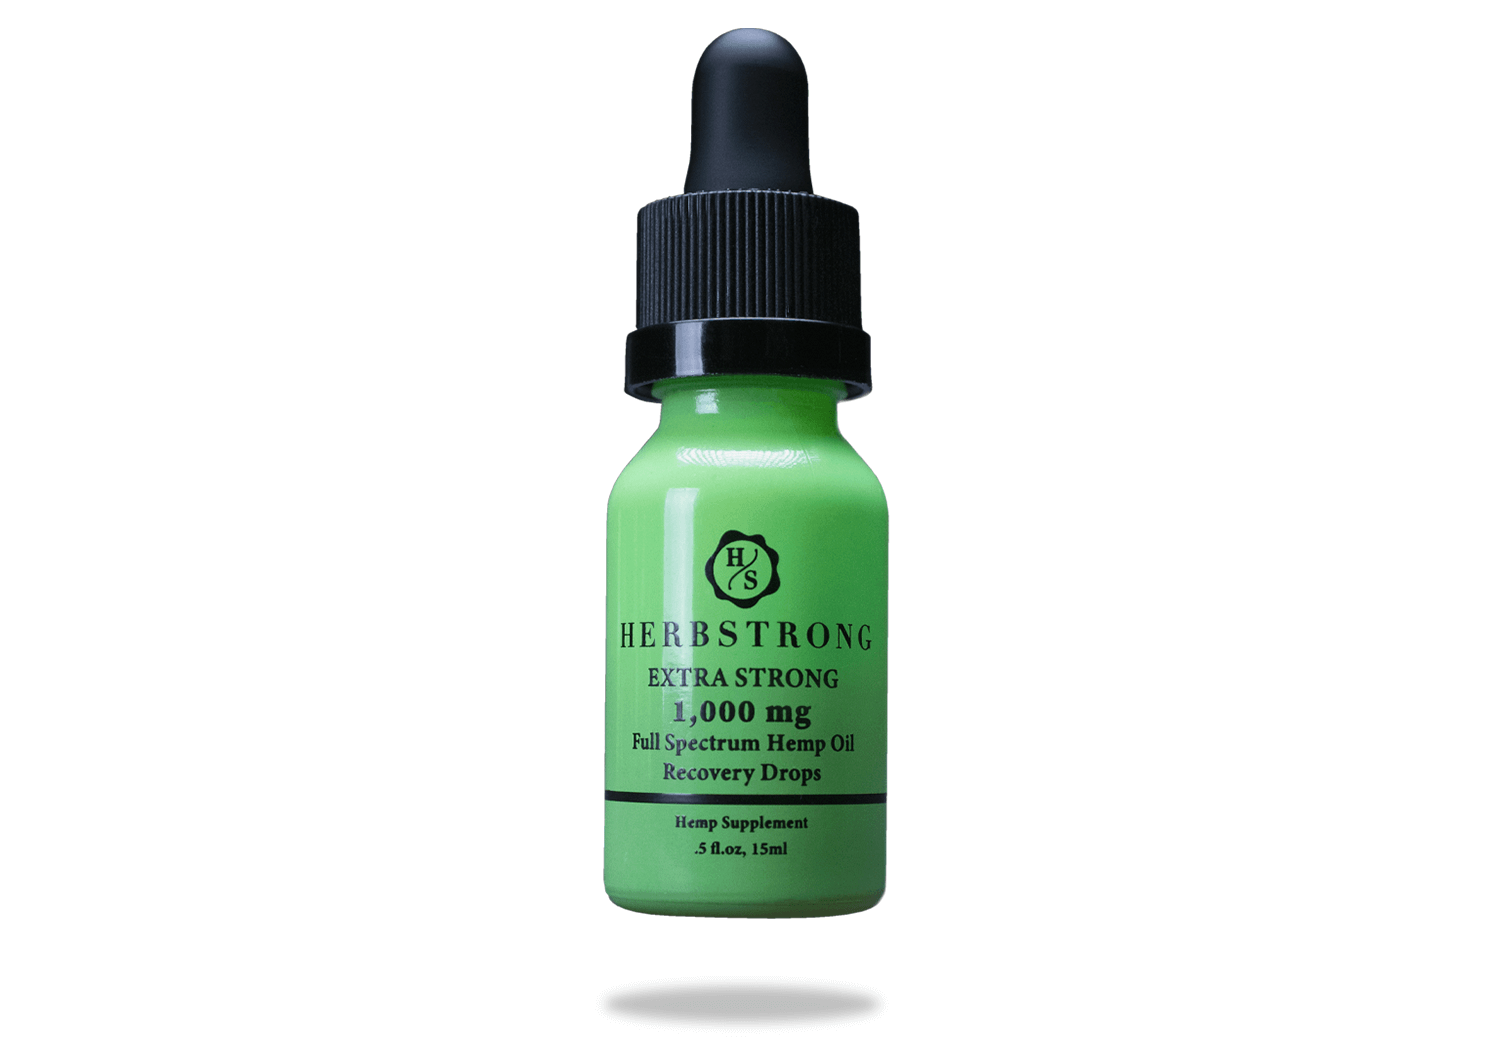 Herbstrong CBD recovery drops